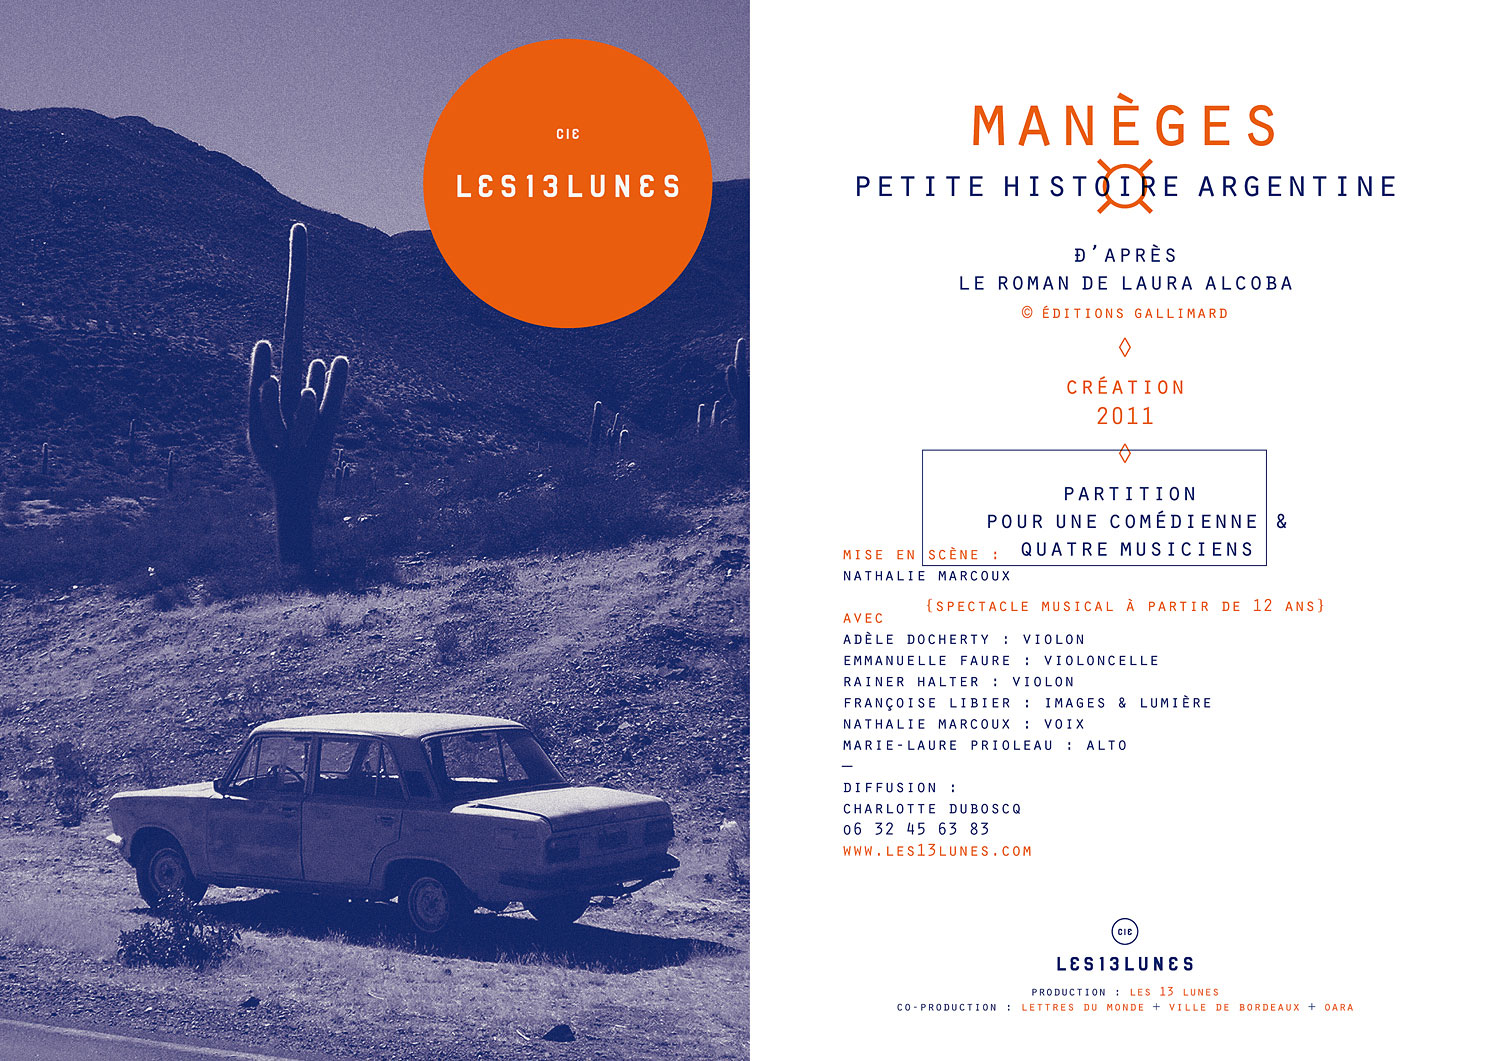 MrThornill-graphisme-13lunes-maneges-petite-histoire-argentine